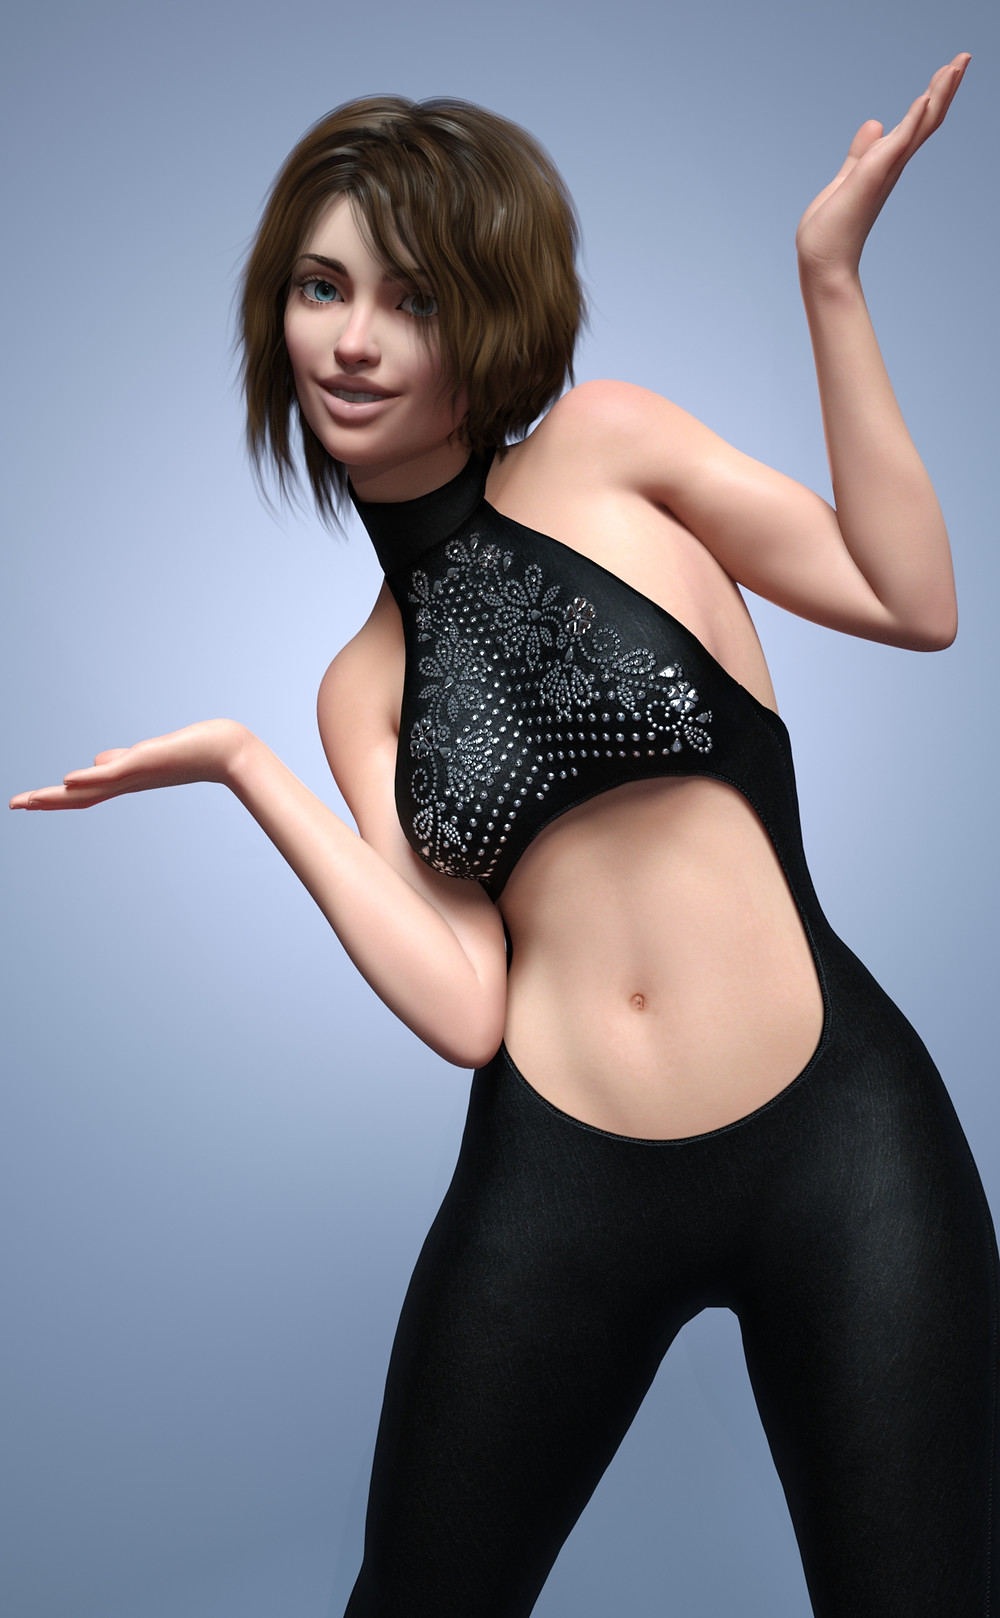 Woman with short, choppy dark hair wearing Daz3D dForce Flared Chic Outfit for Genesis 8 (all-in-one black, sleeveless suit with stomach hole cut out and sparkly embroidered pattern on chest